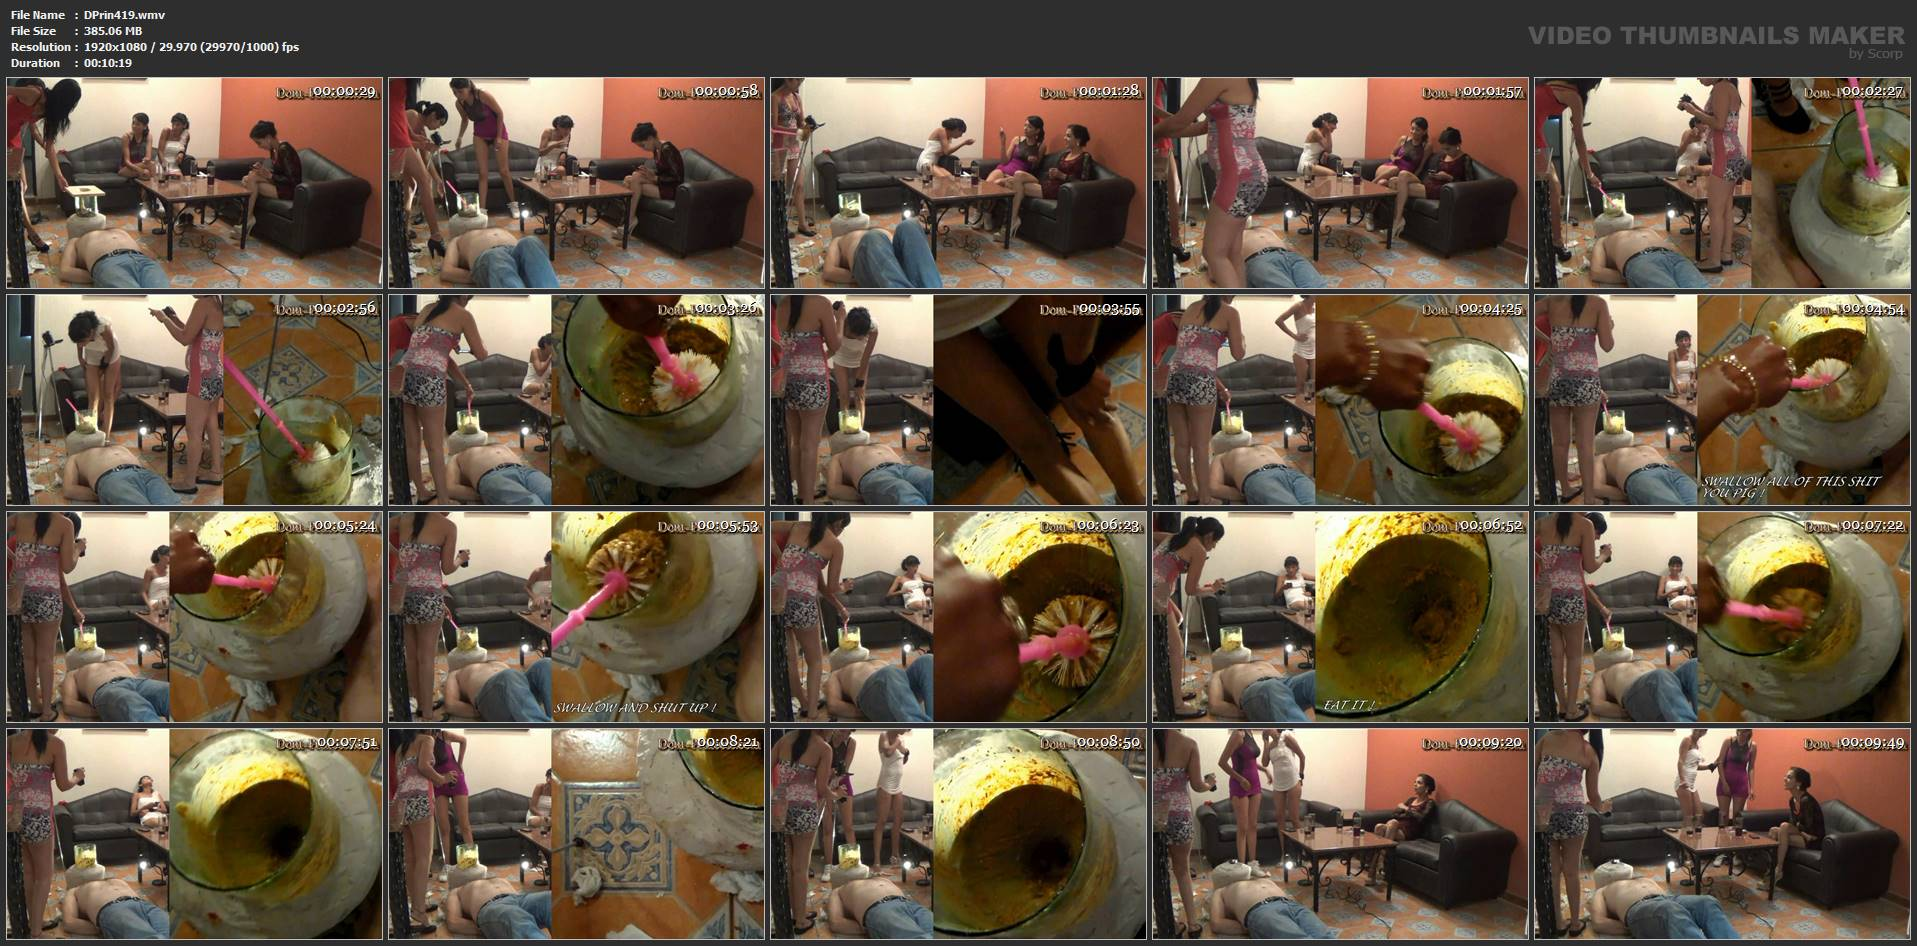 [DOM-PRINCESS] The Poop Collector Part 06 The Feeding [FULL HD][1080p][WMV]